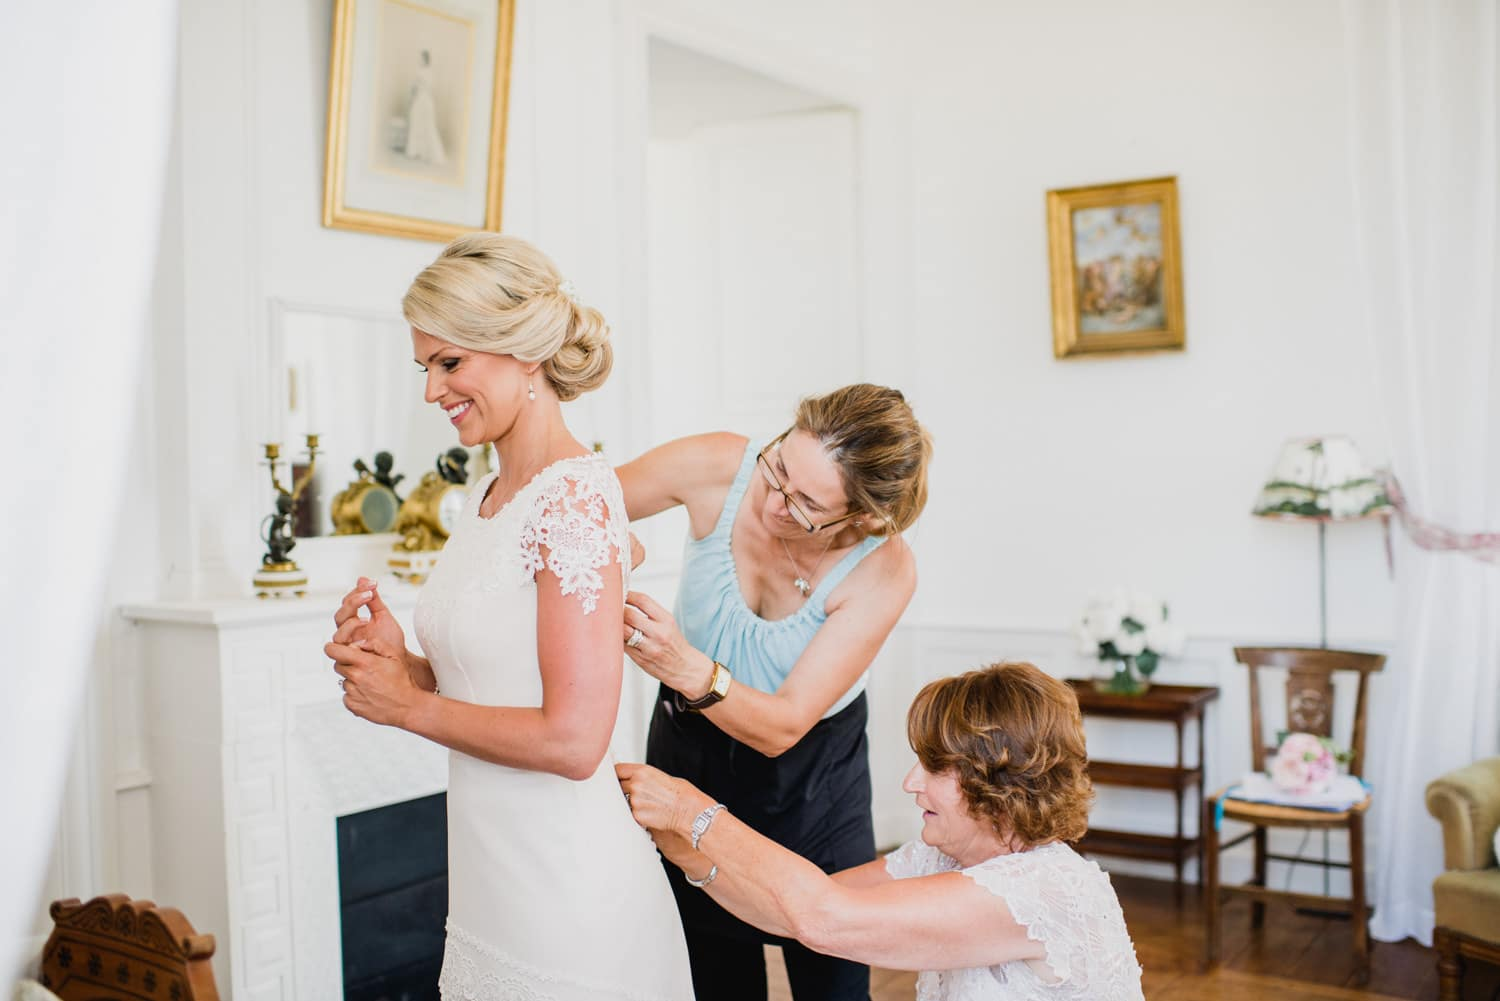 bride getting into her dress at Chateau de Lacoste wedding